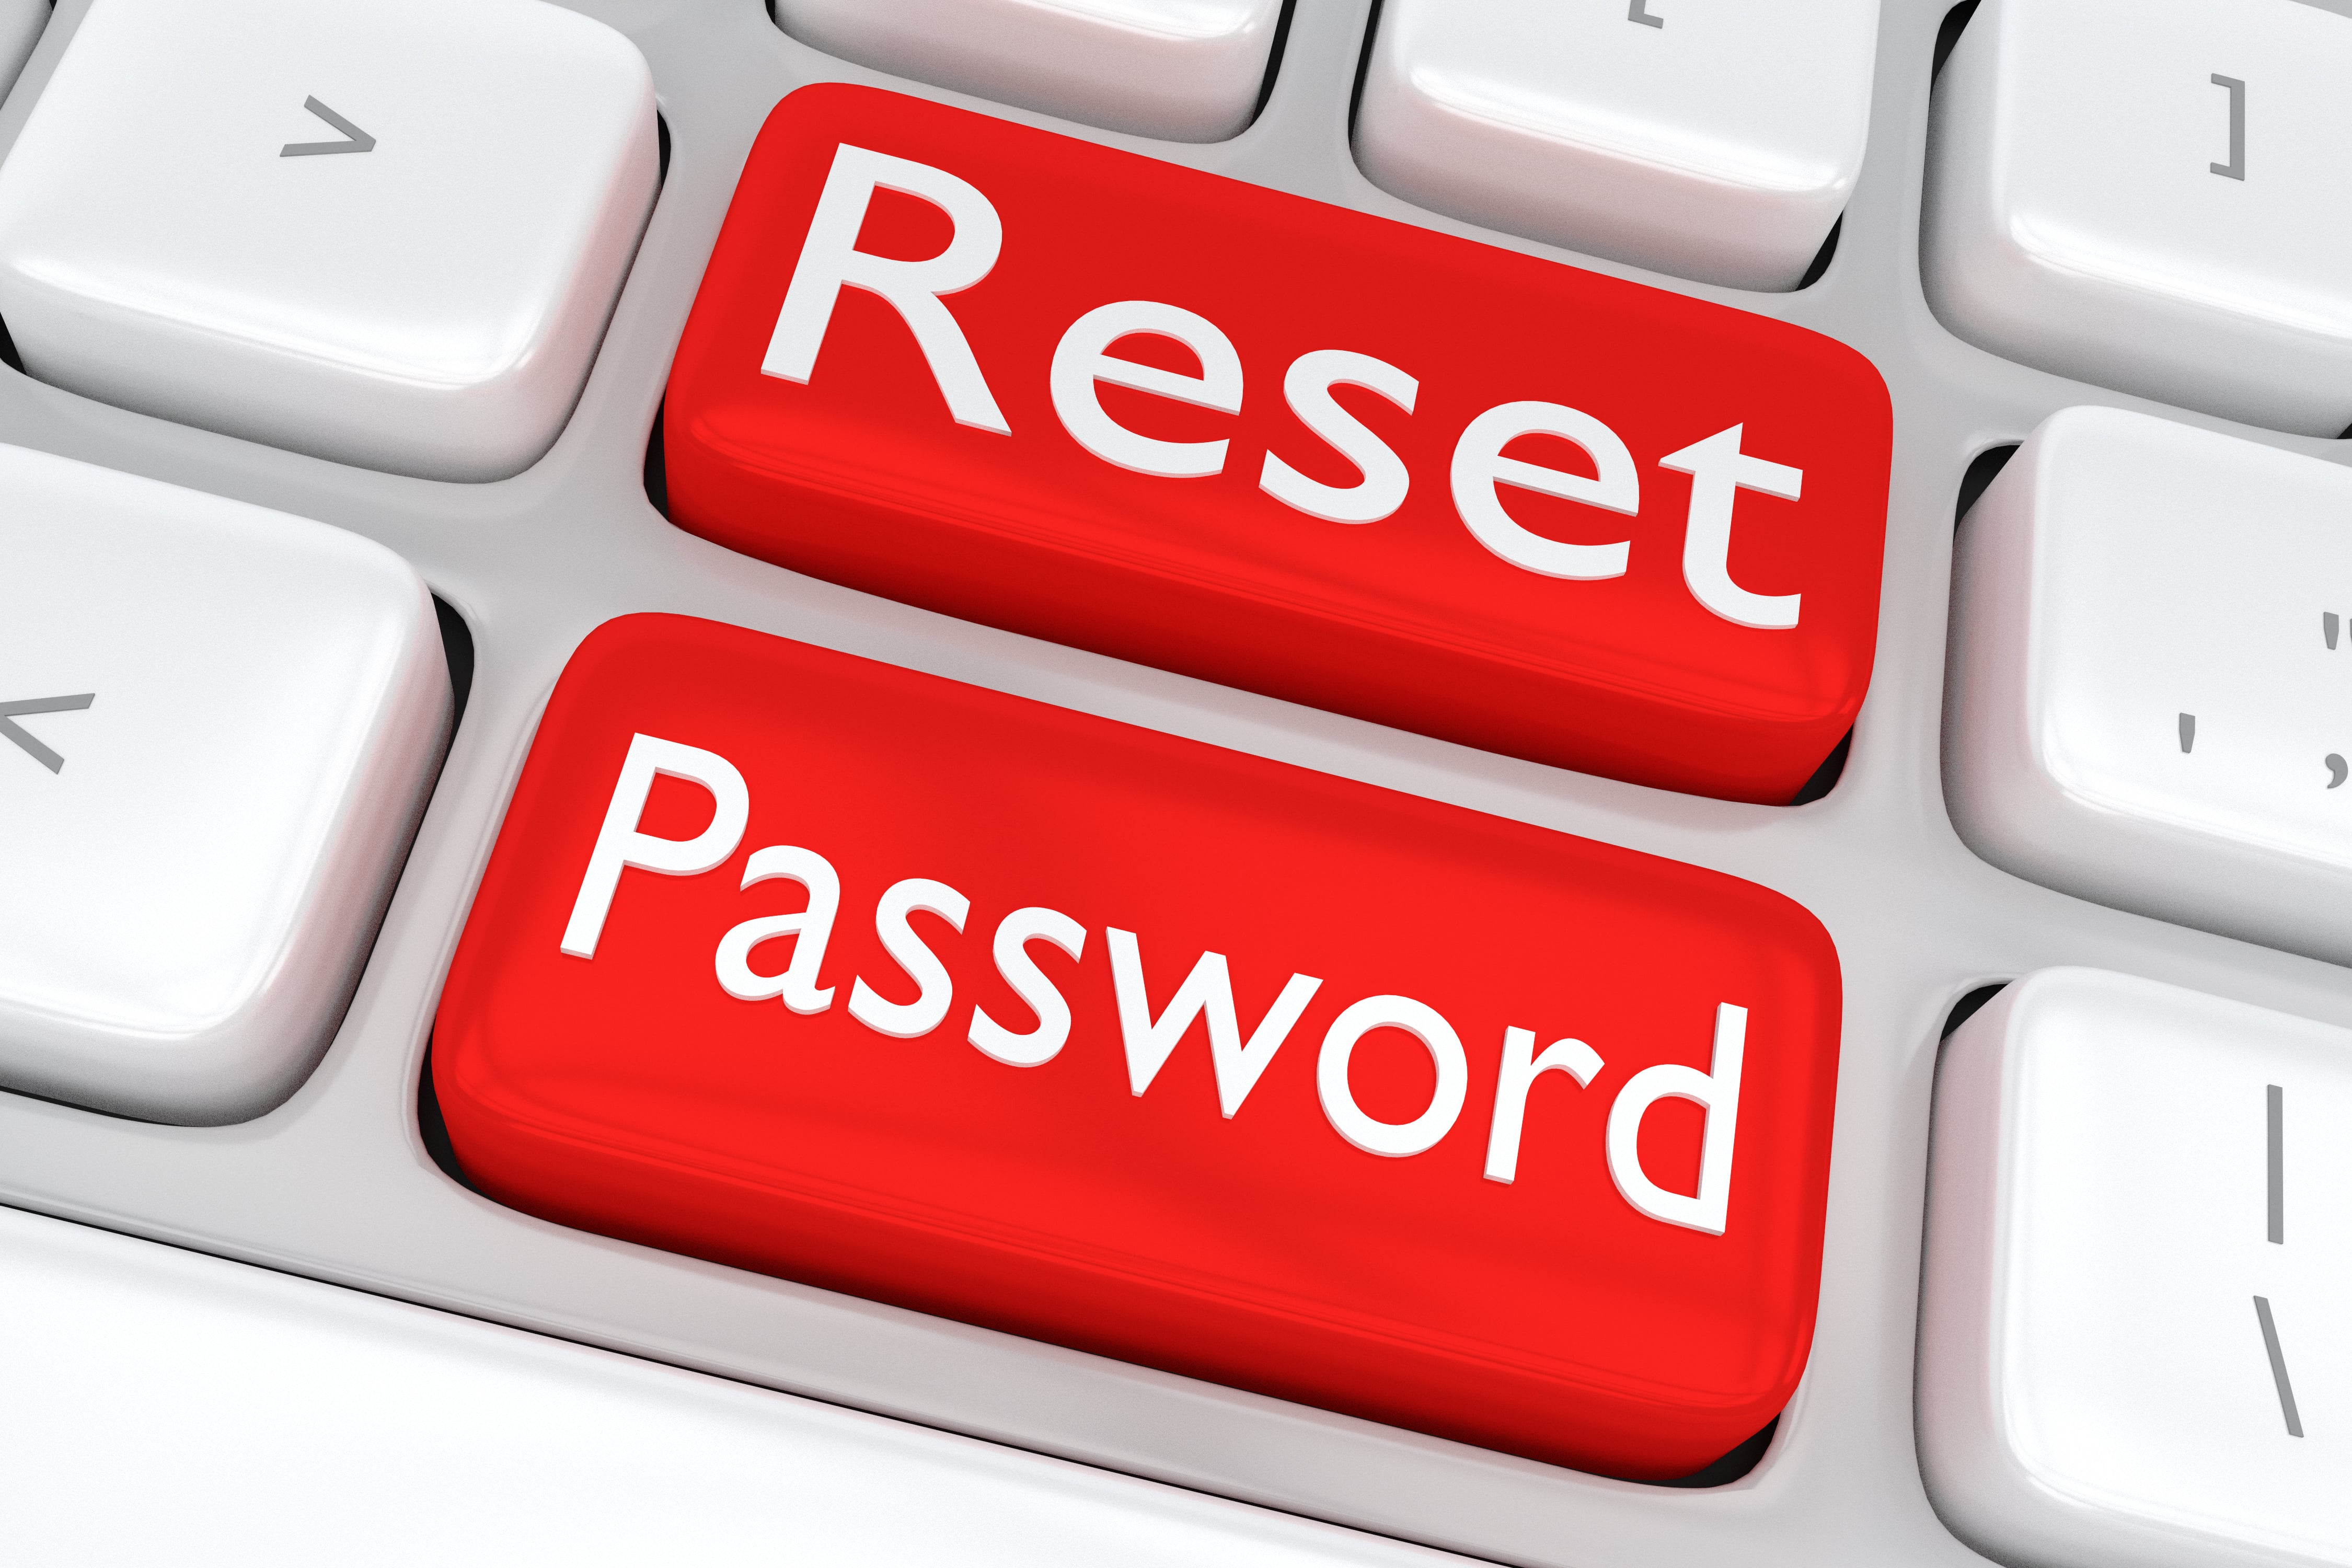 keyboard with password reset buttons